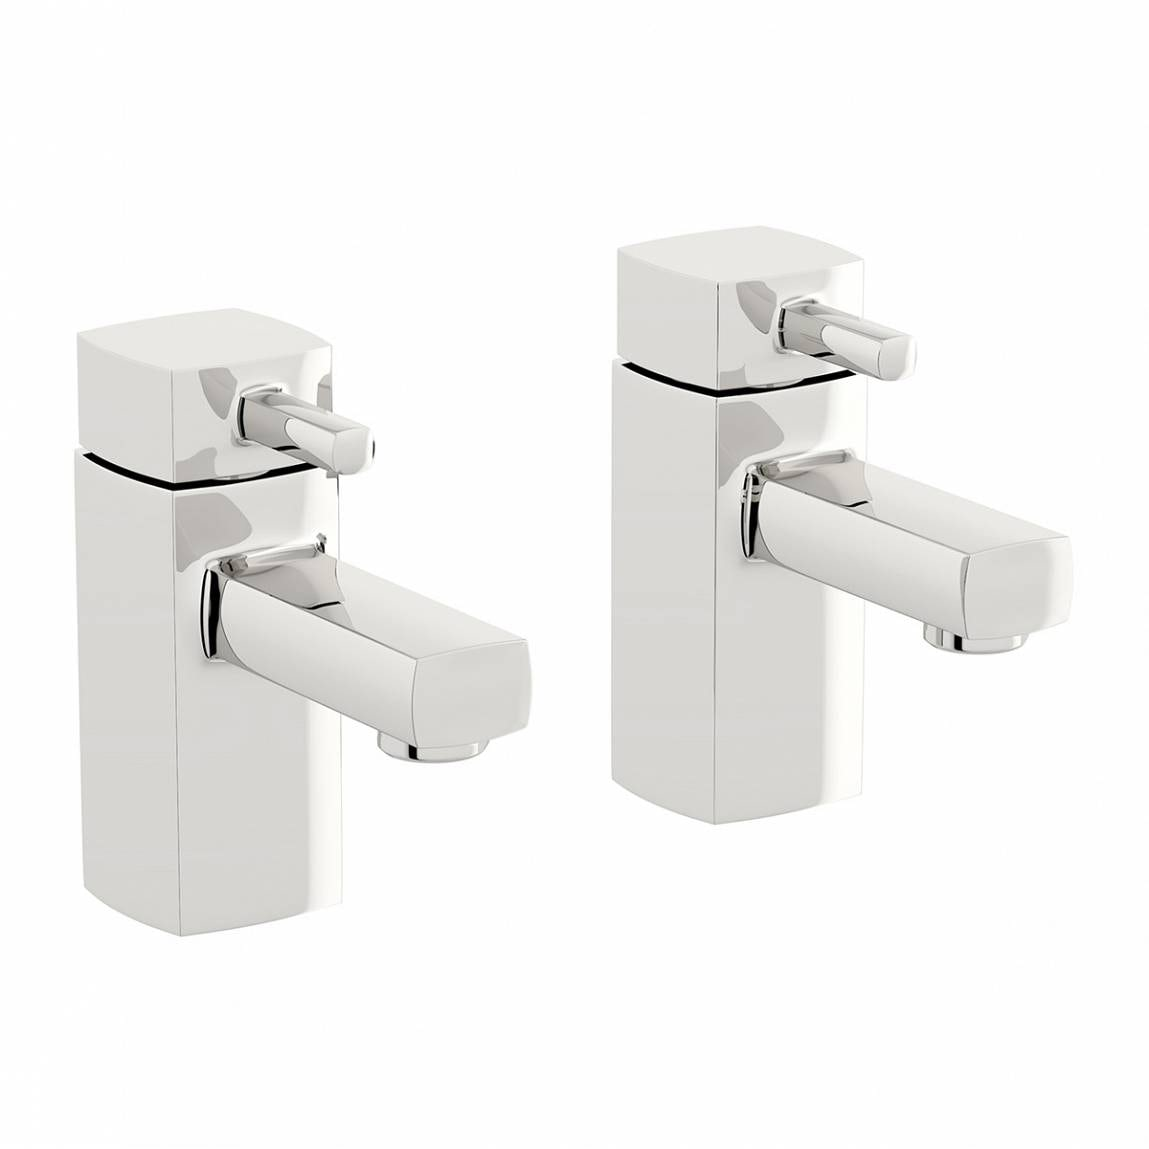 Orchard Derwent basin pillar taps